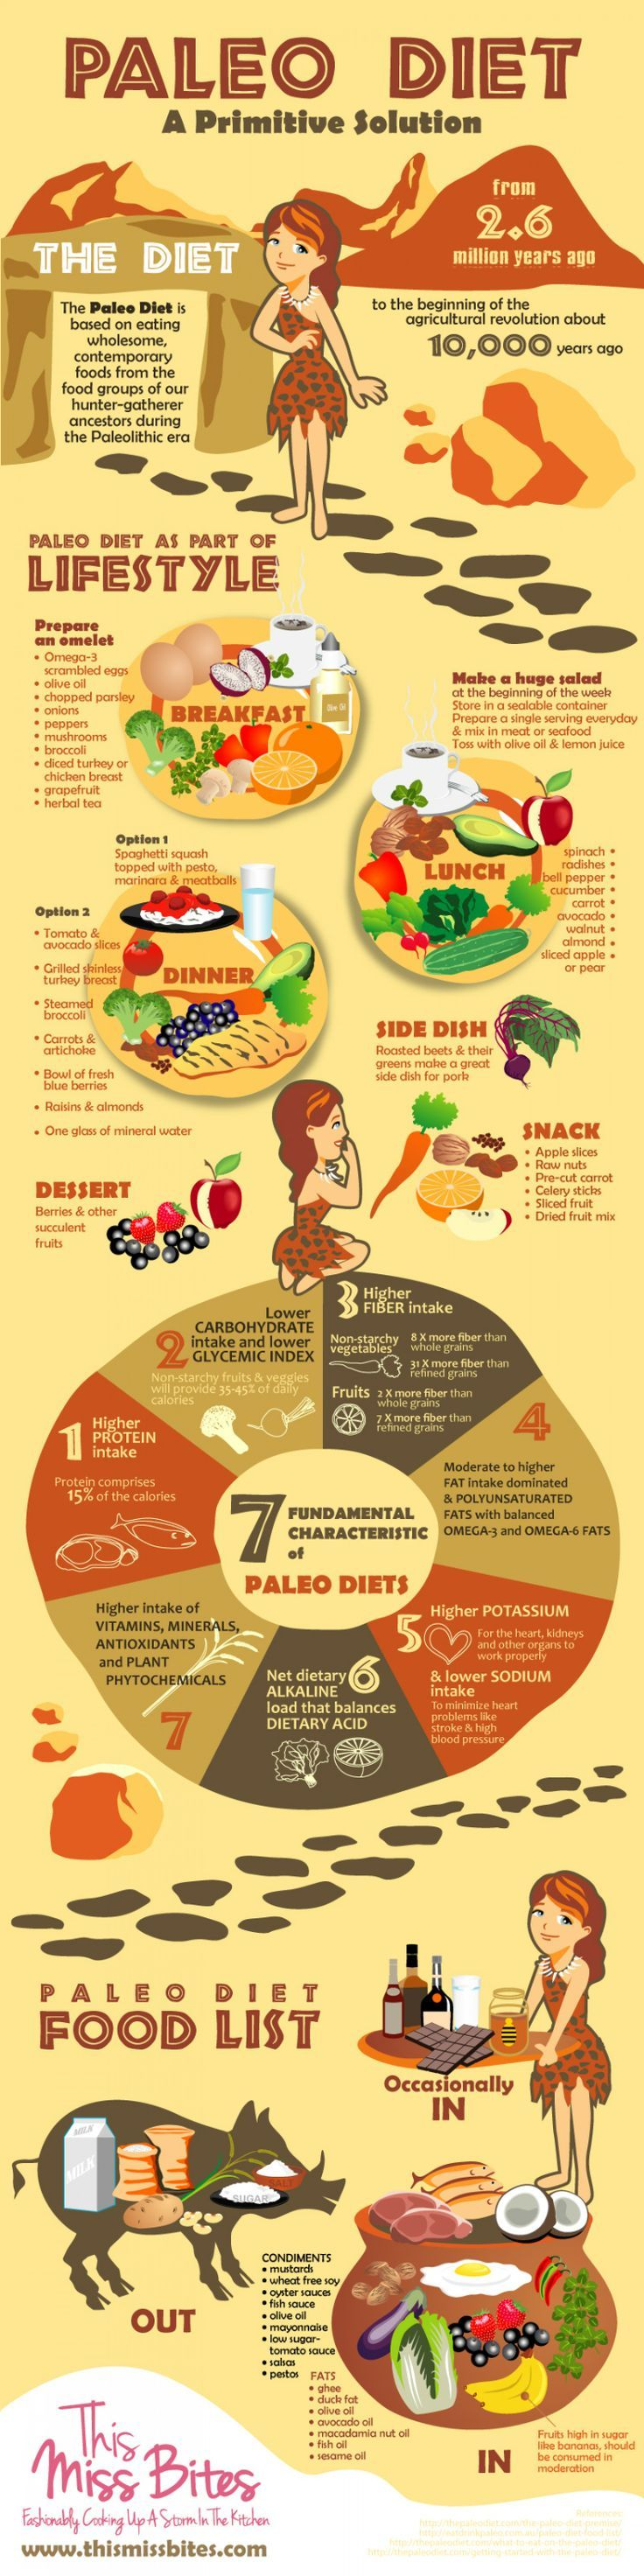 ♥►◄♥ Paleo Diet Plan for Beginners Infographic ♥►◄♥ #carbswitch carbswitch.com Please repin